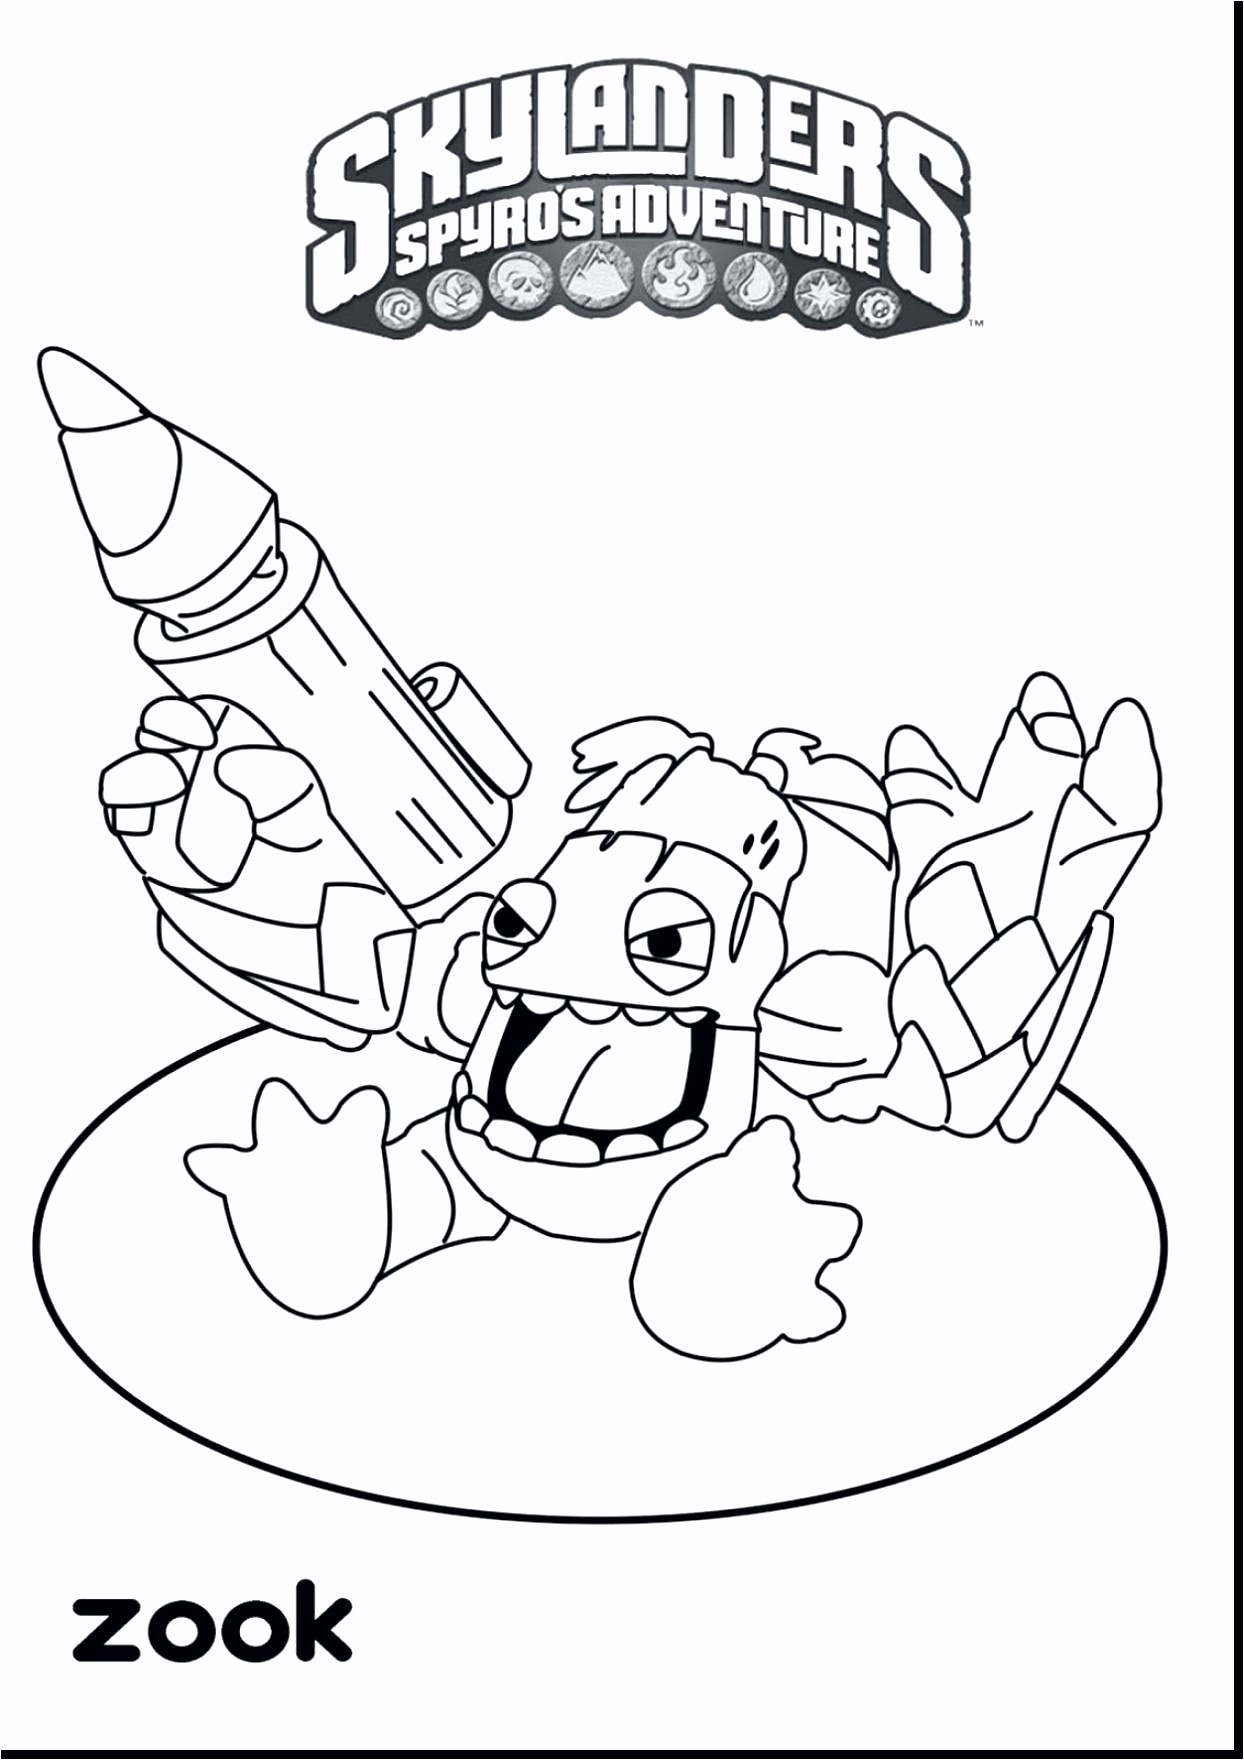 Puzzle Coloring Pages  Collection 17t - To print for your project